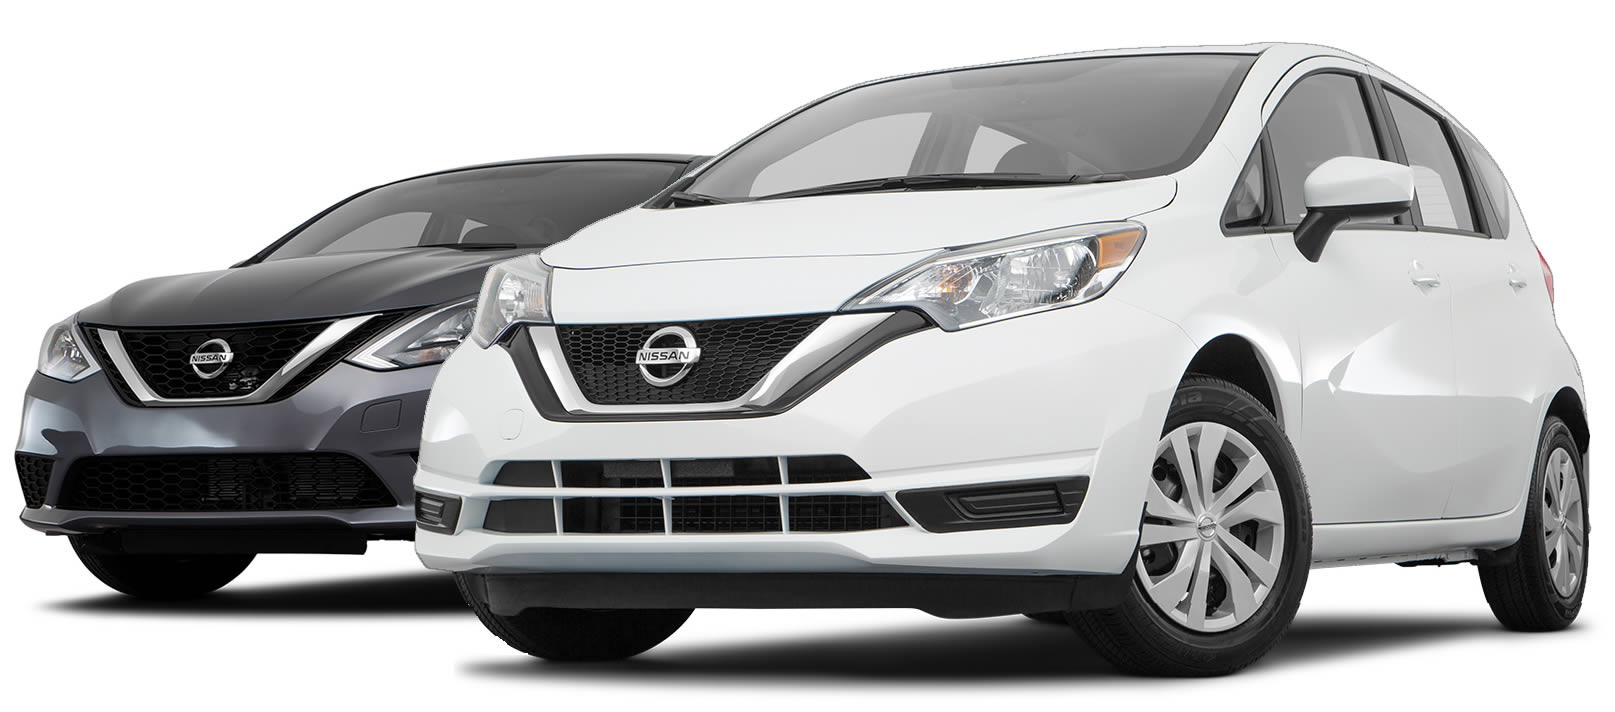 Cheapest Car To Lease Canada >> Top 10 Cheapest Car In Canada For 2019 Leasecosts Canada